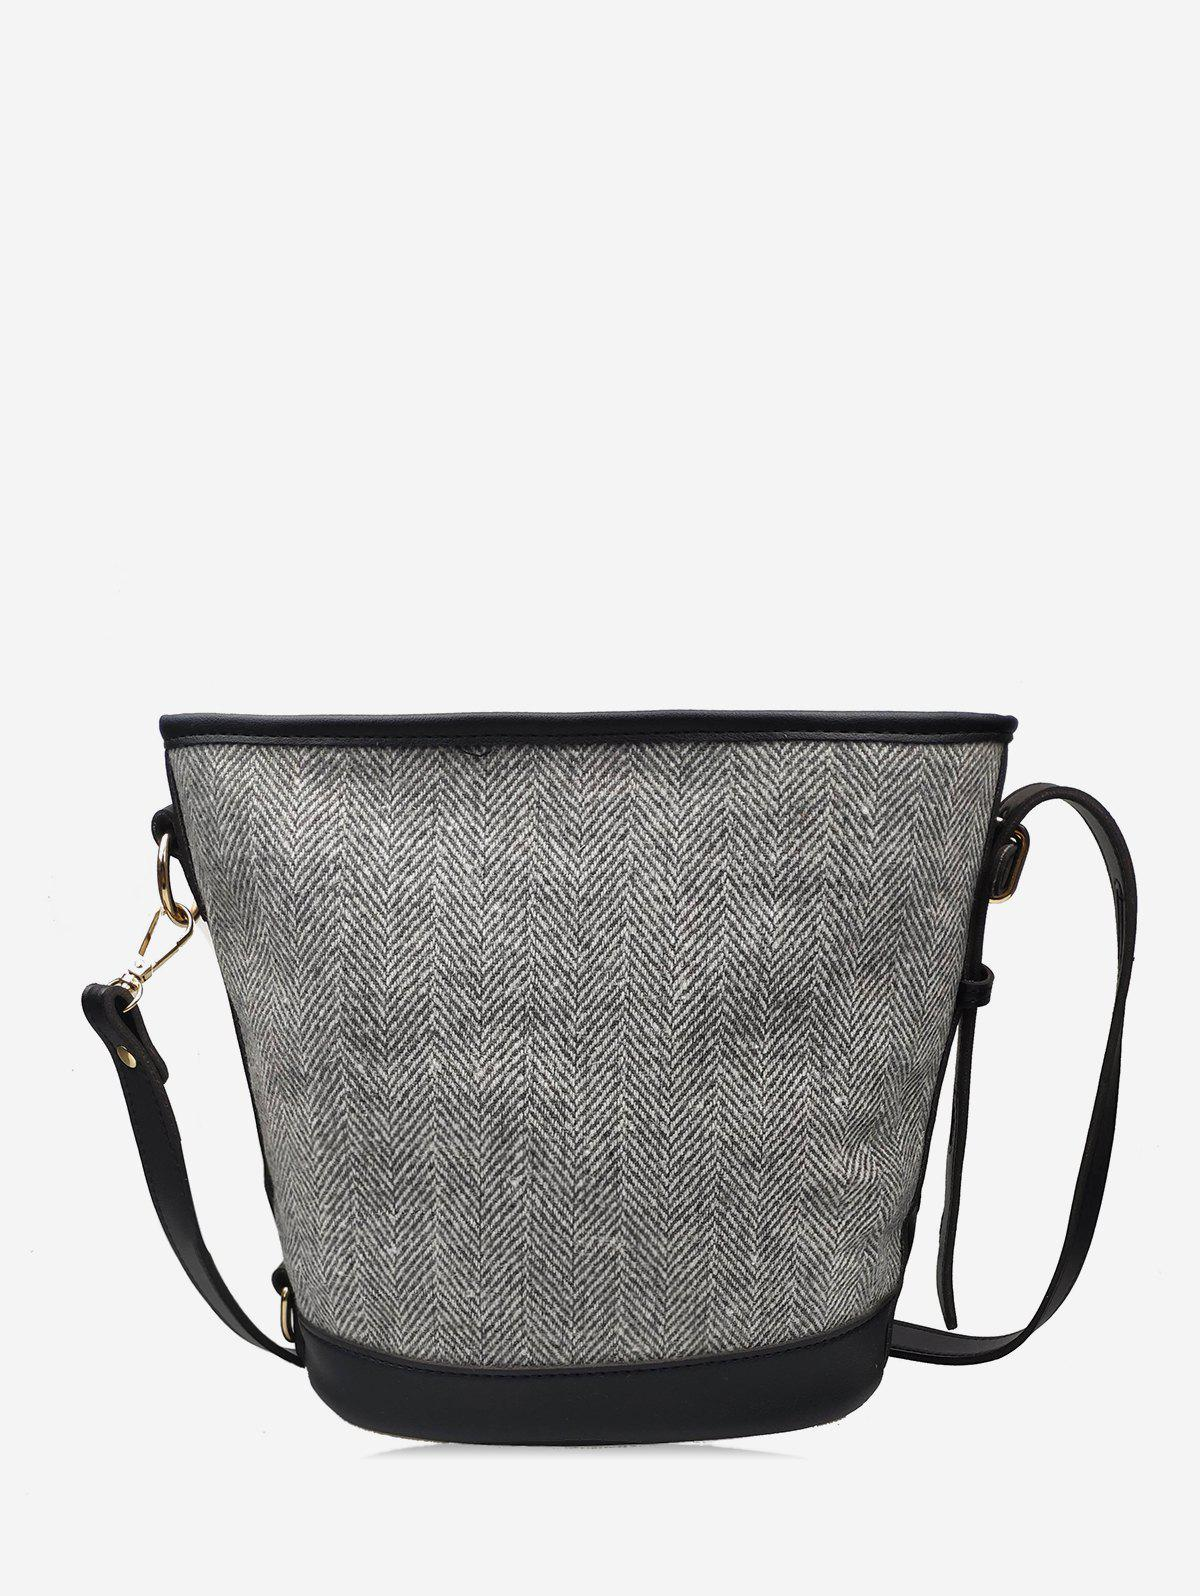 New Knitted Canvas Bucket Shoulder Bag